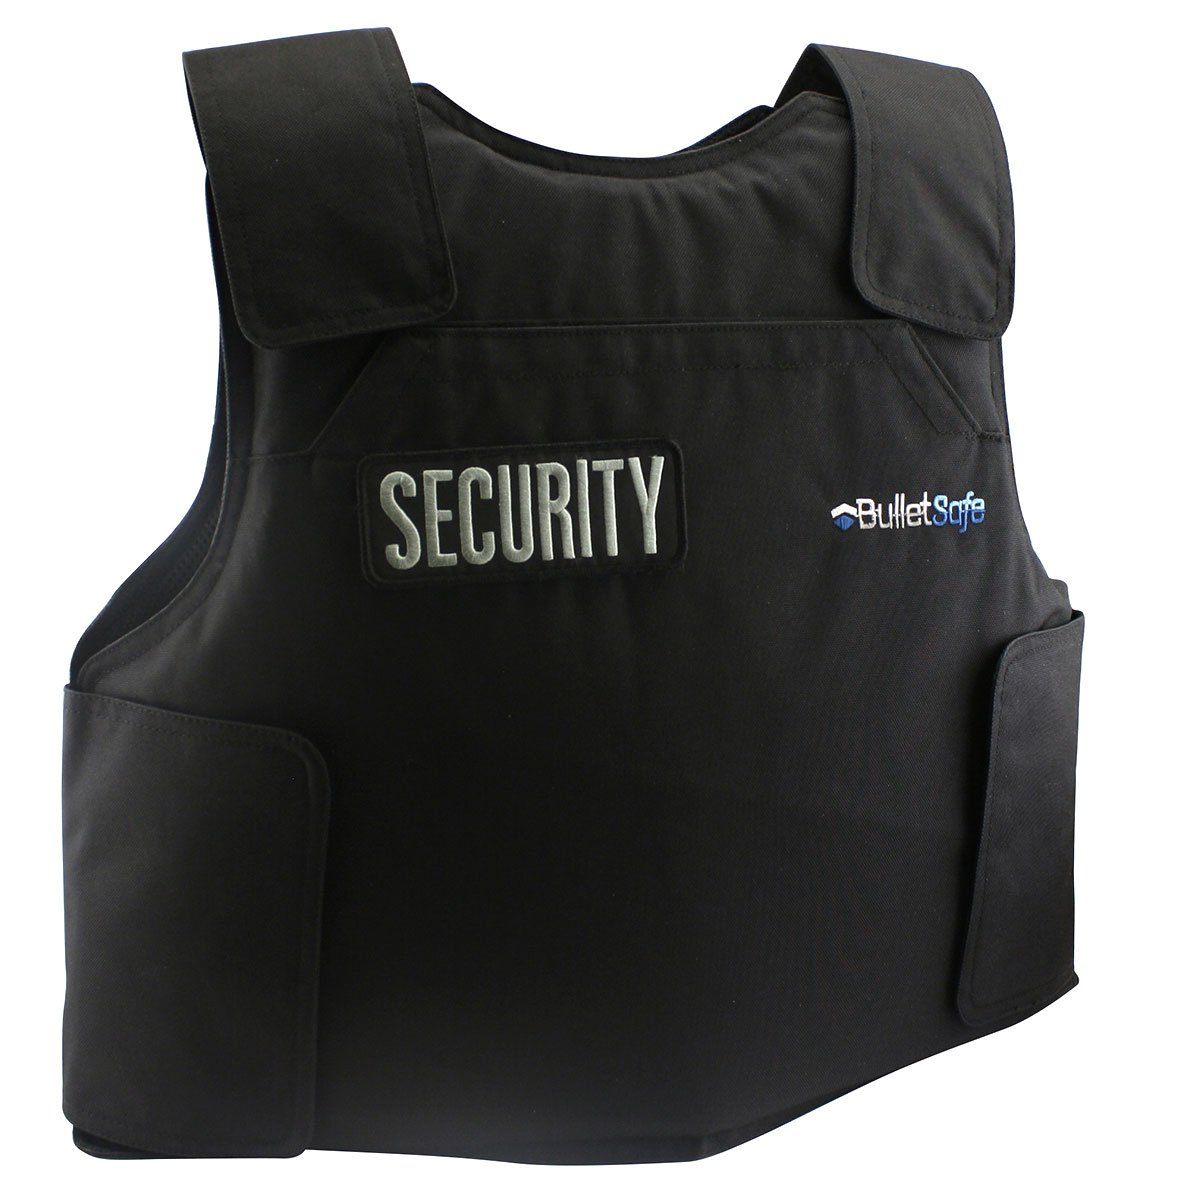 BulletSafe bulletproof vest with security patch attached.